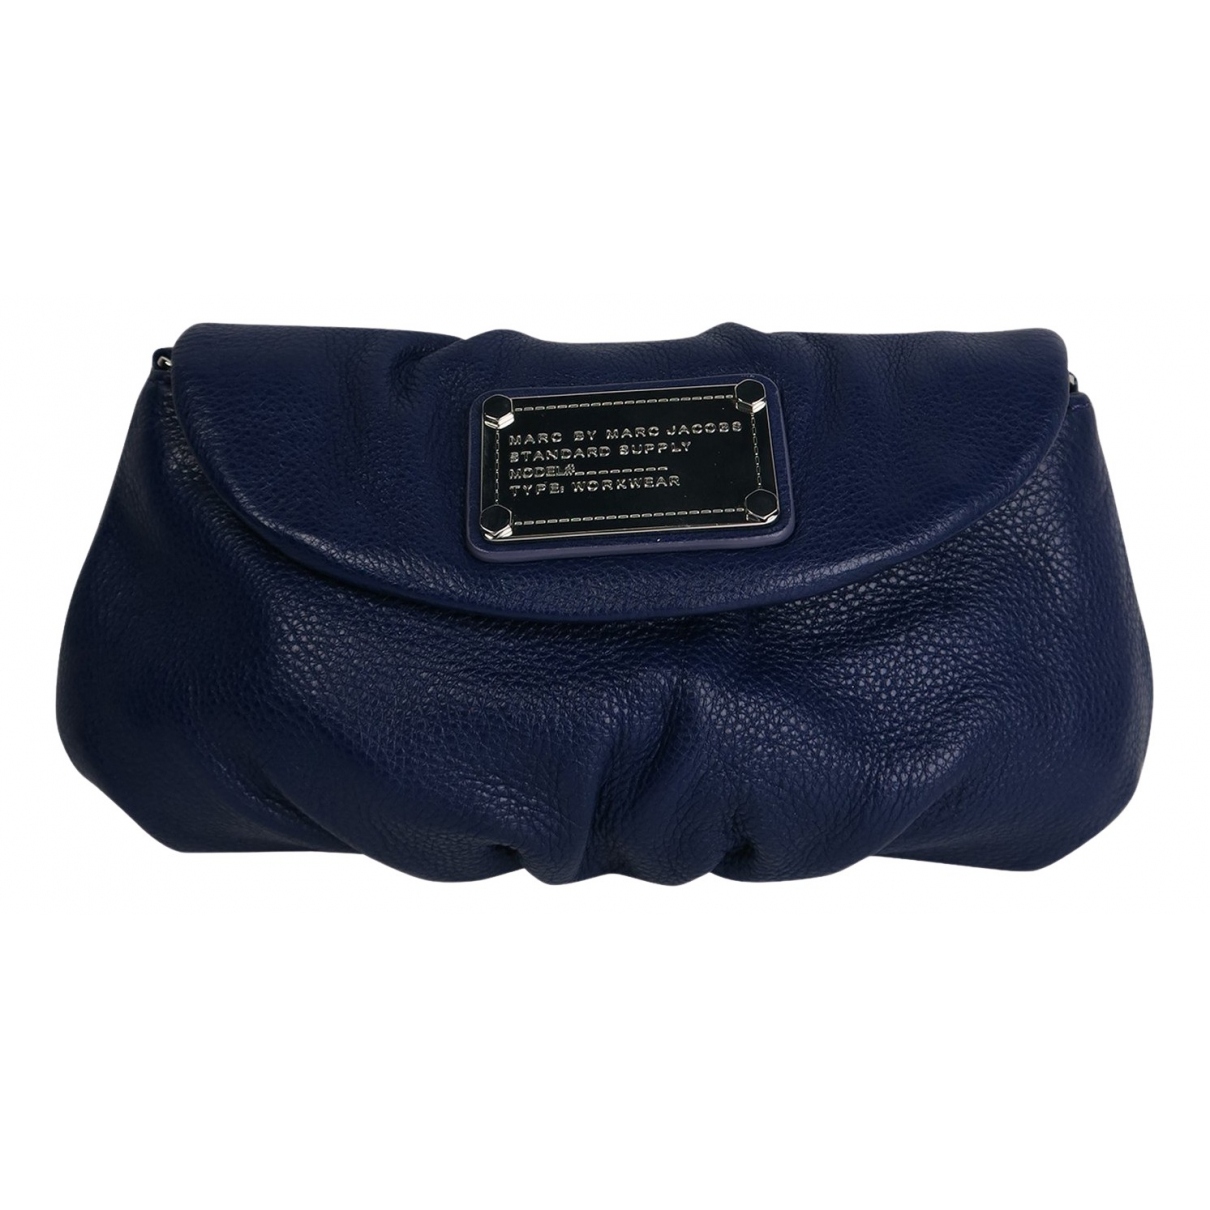 Marc By Marc Jacobs N Purple Leather Clutch bag for Women N